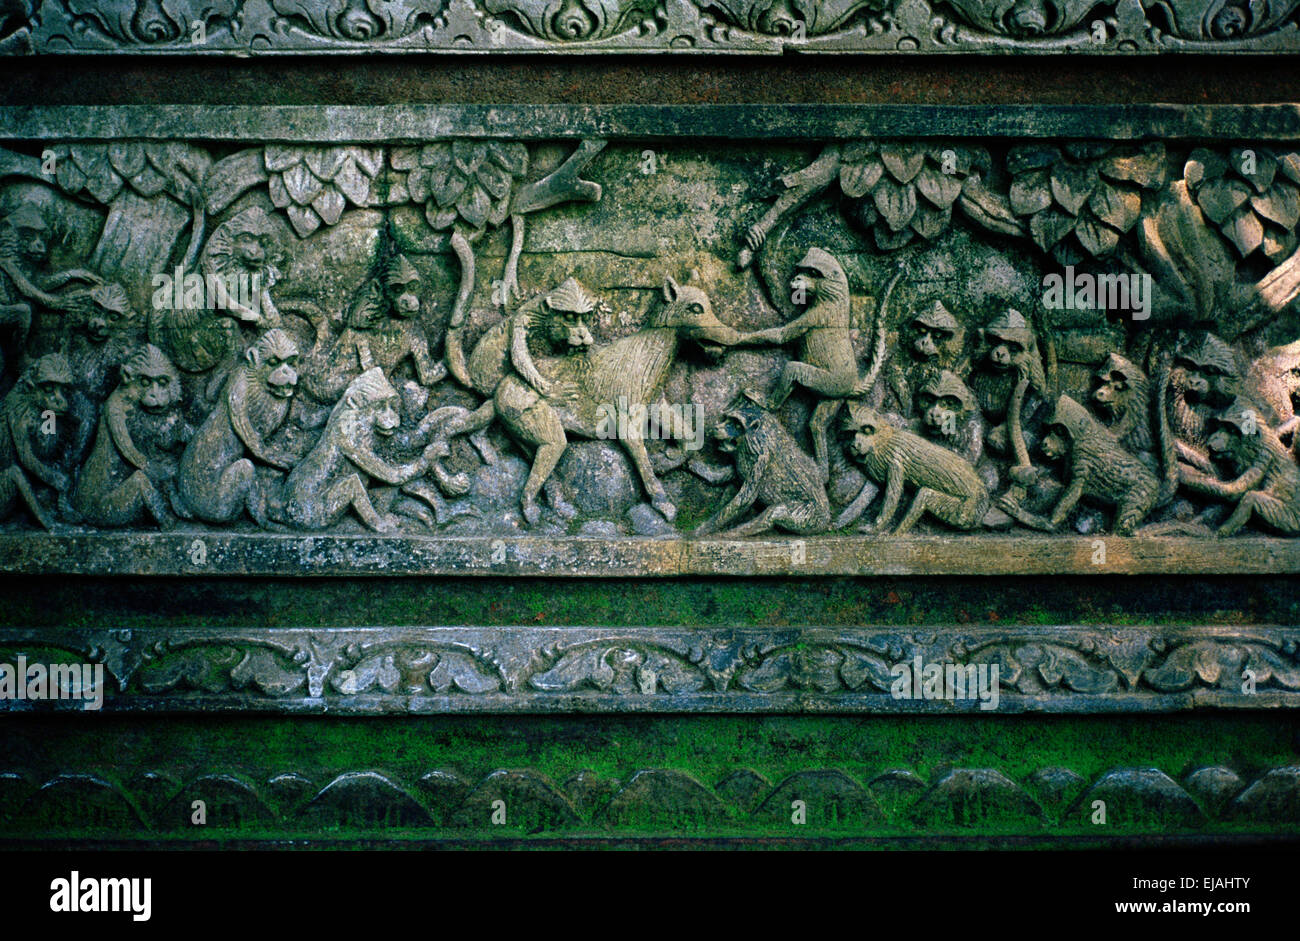 In the Monkey Forest in Ubud in Bali in Indonesia in Southeast Asia. Sculpture Carving Art Temple Religious History - Stock Image